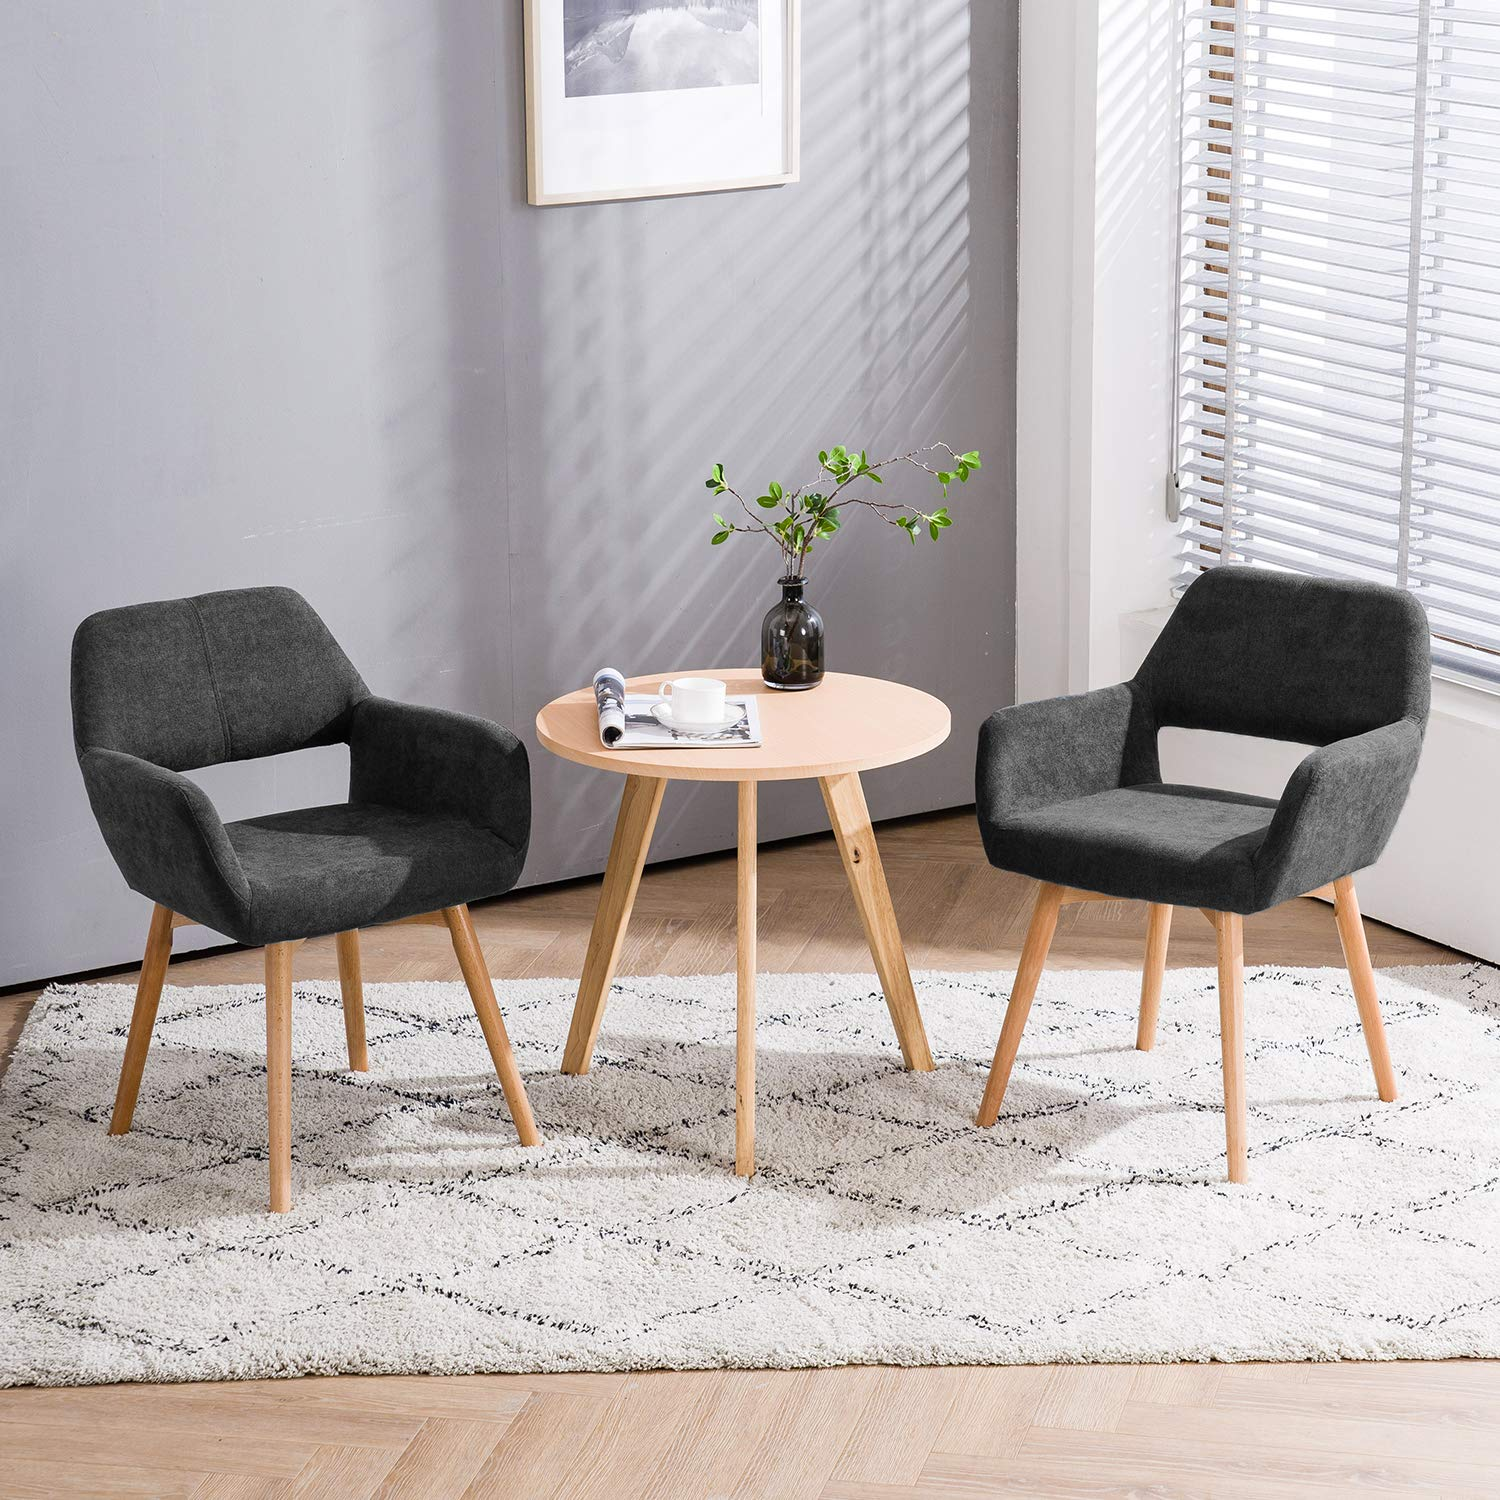 Homy Grigio Modern Living Dining Room Accent Arm Chairs Club Guest with Solid Wood Legs (Set of 2,Charcoal)